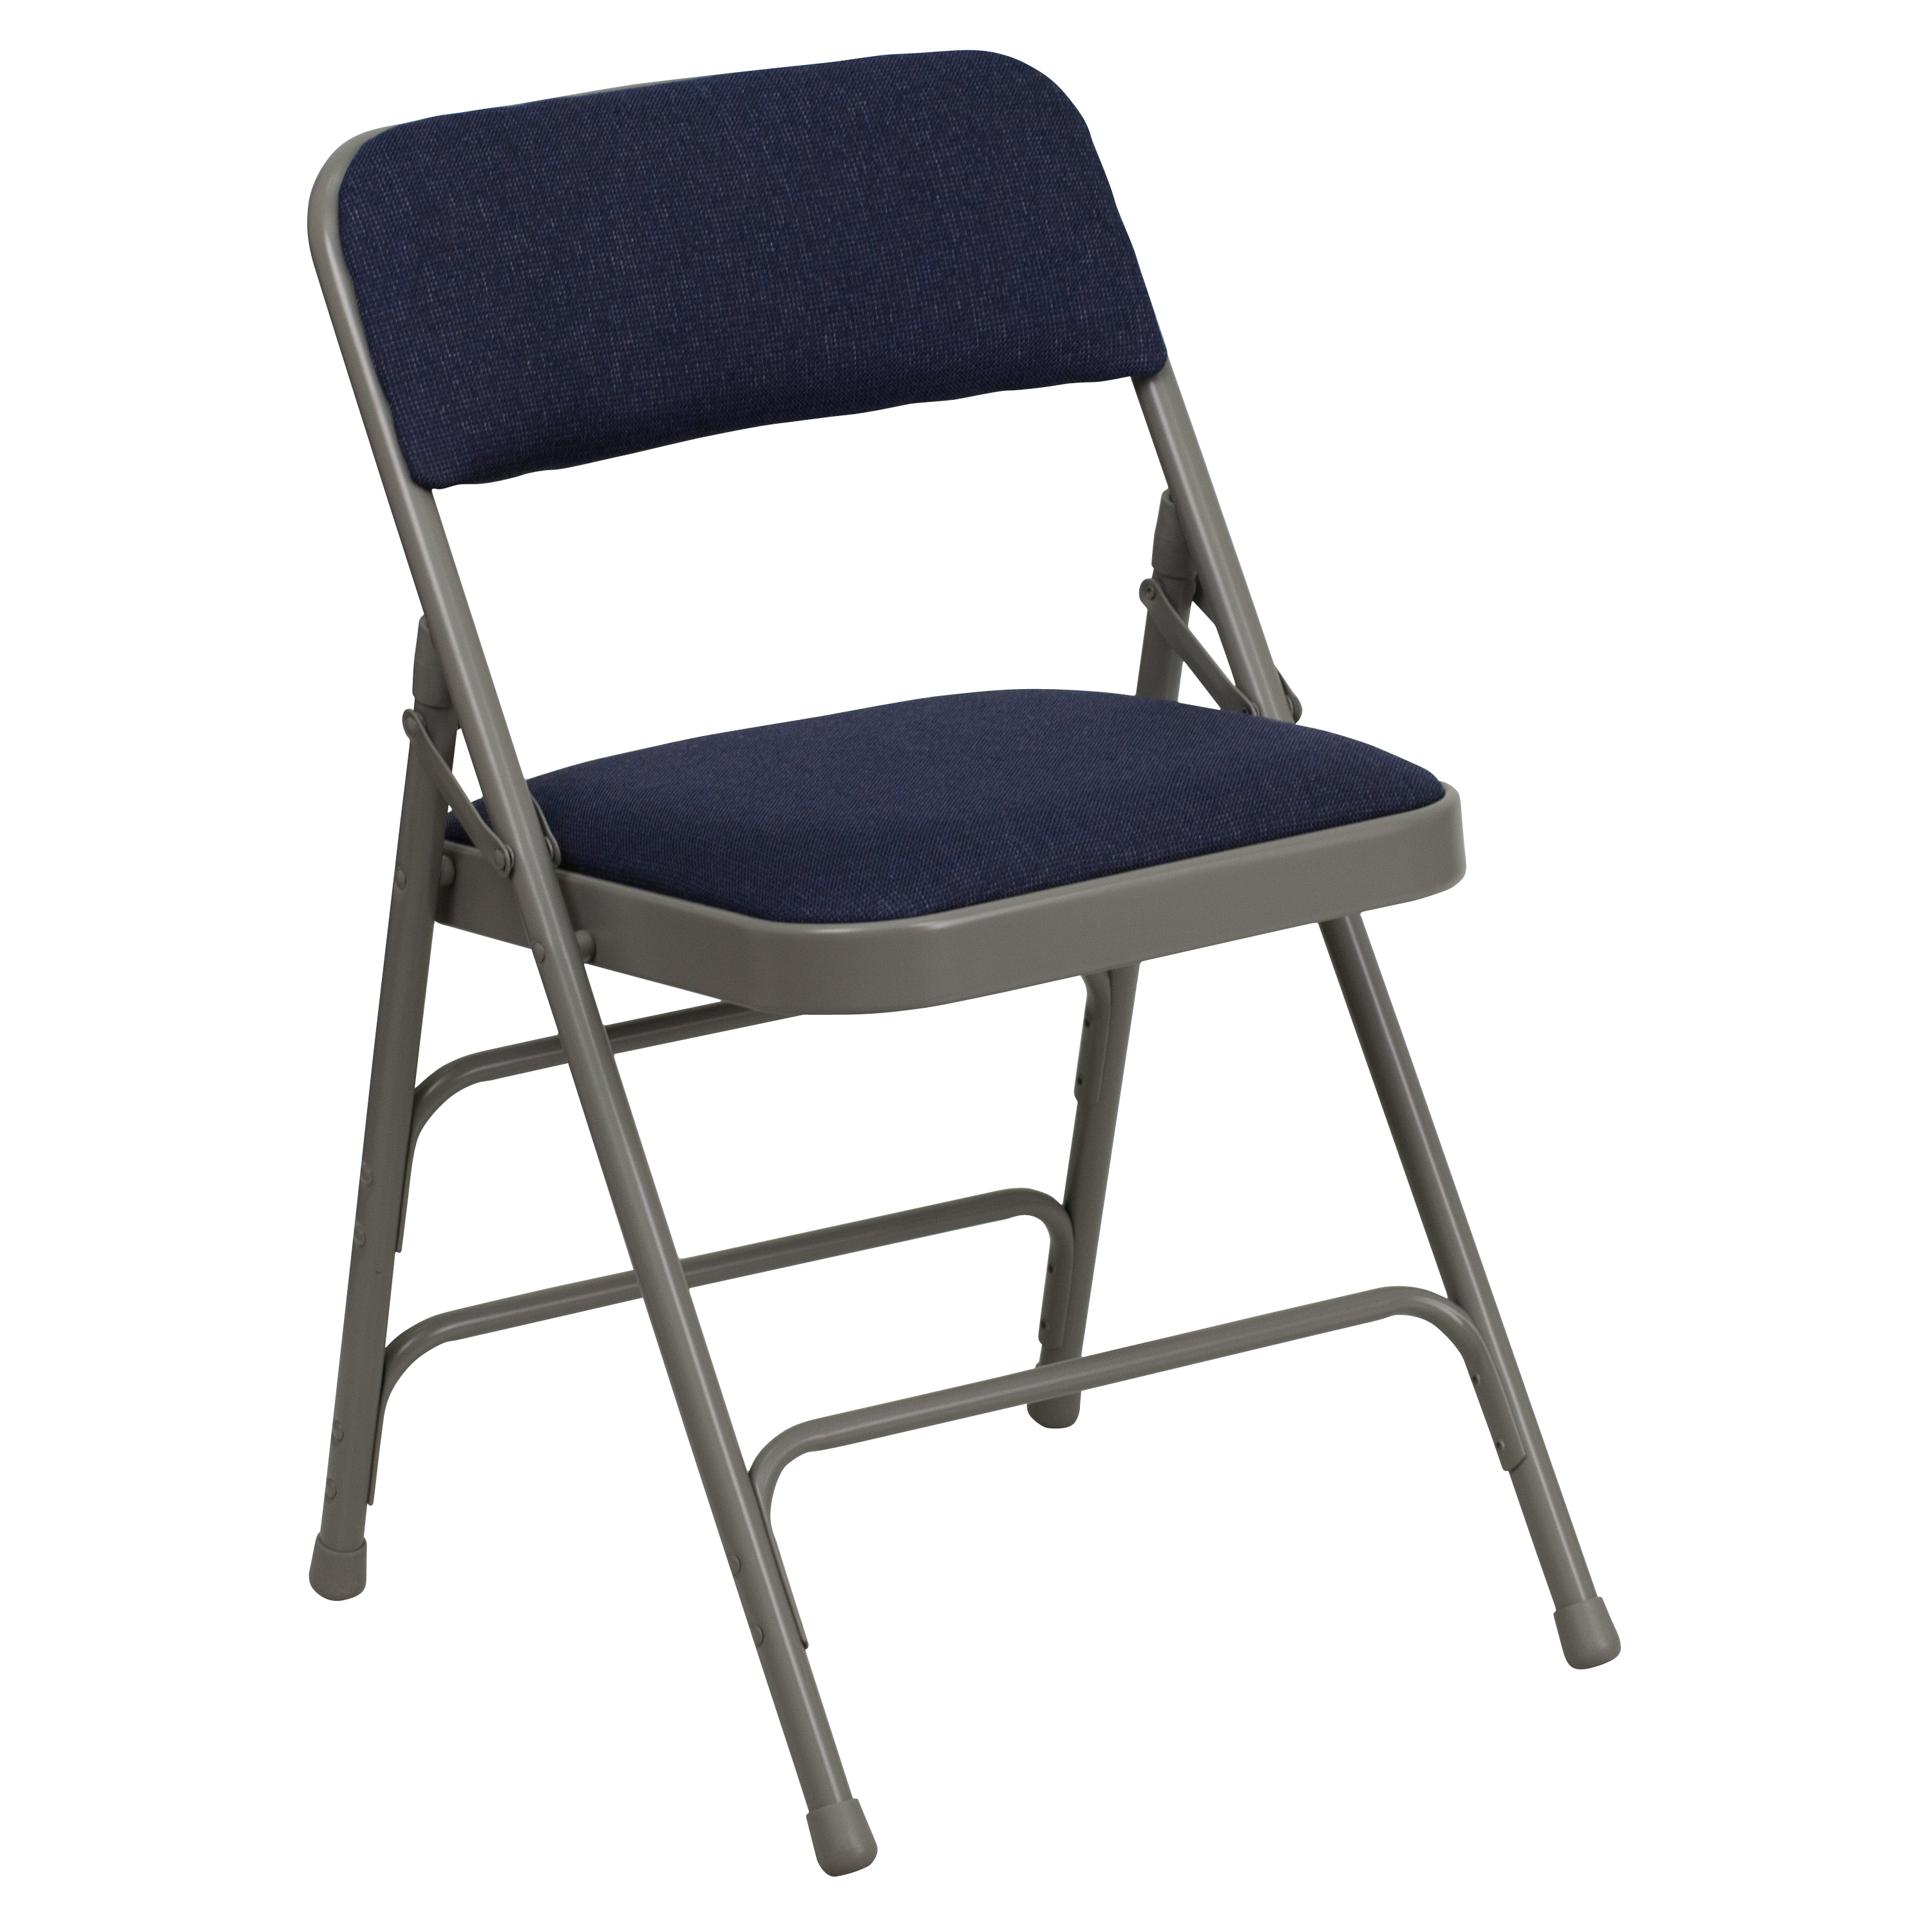 HERCULES Series Curved Triple Braced & Quad Hinged Upholstered Metal Folding Chair-Color:Navy,Upholstery:Fabric